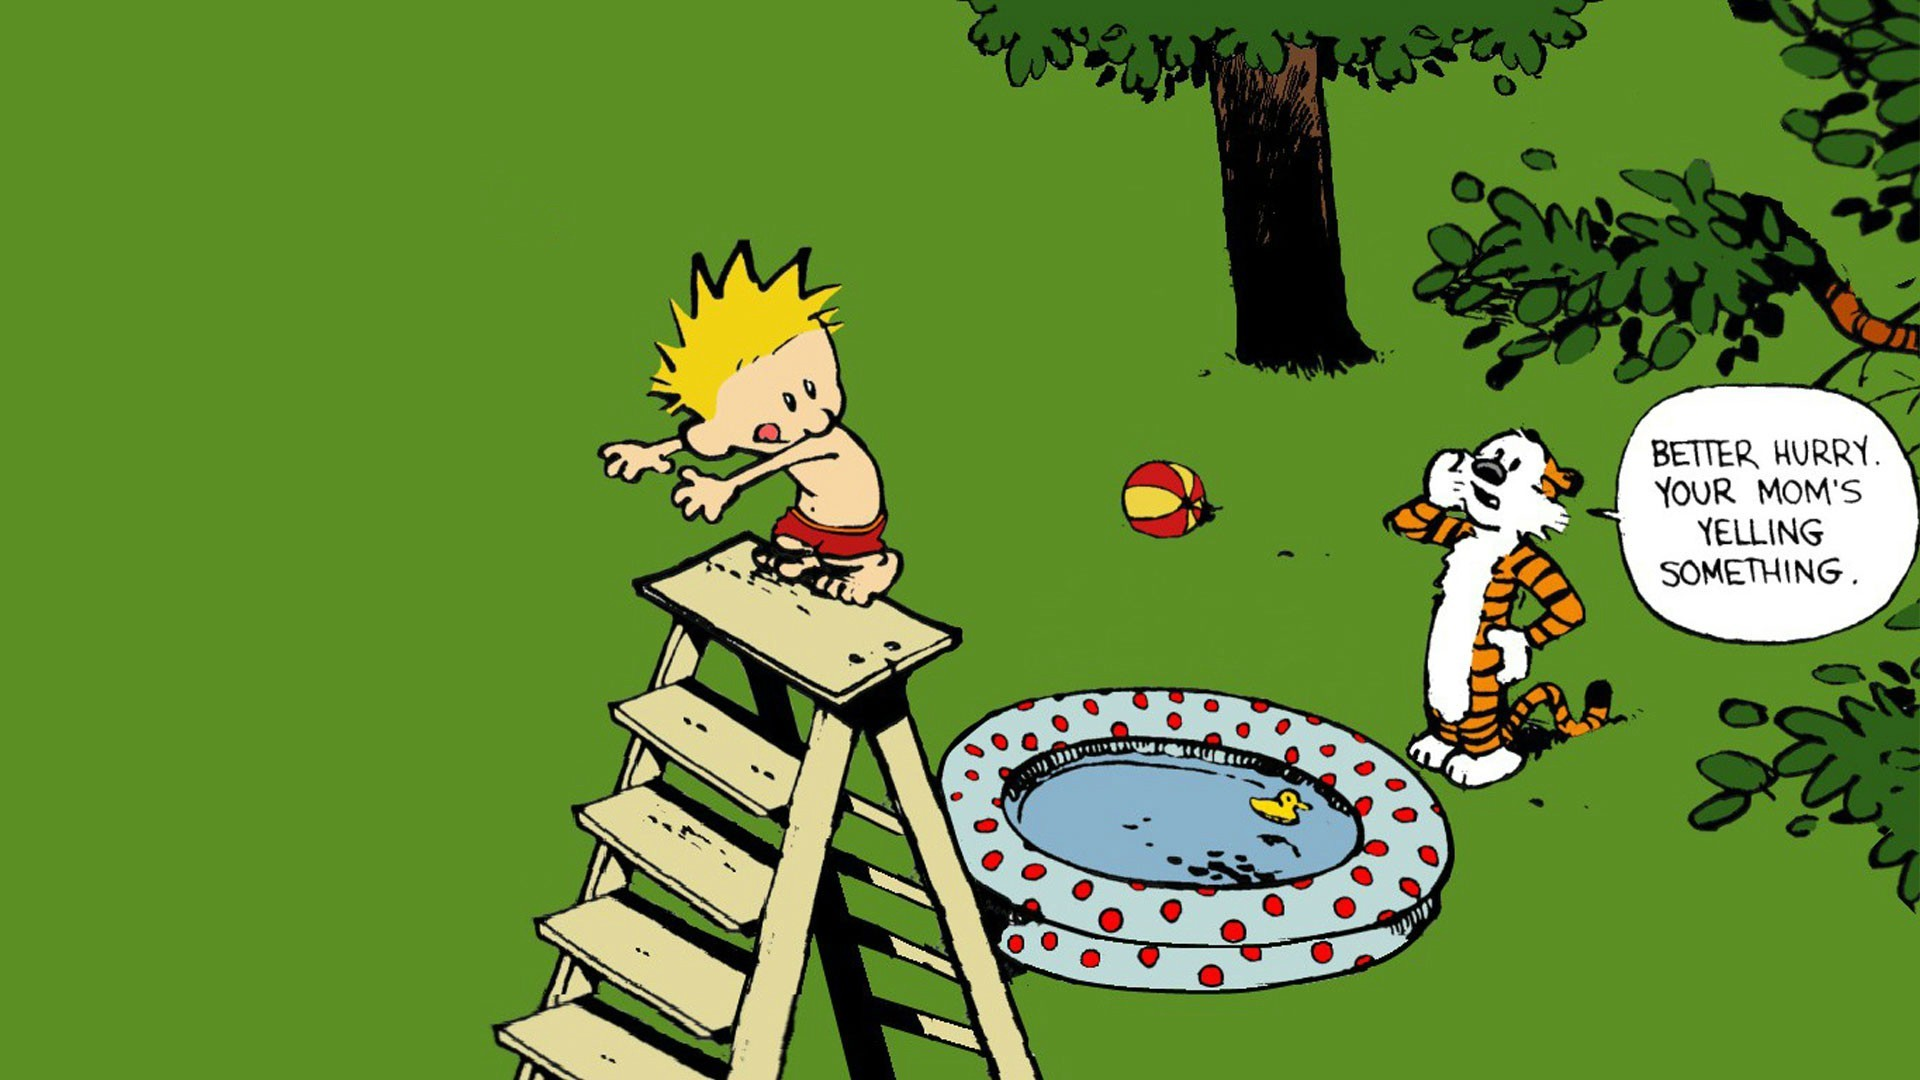 Calvin And Hobbes Wallpaper Download Free Hd Backgrounds For